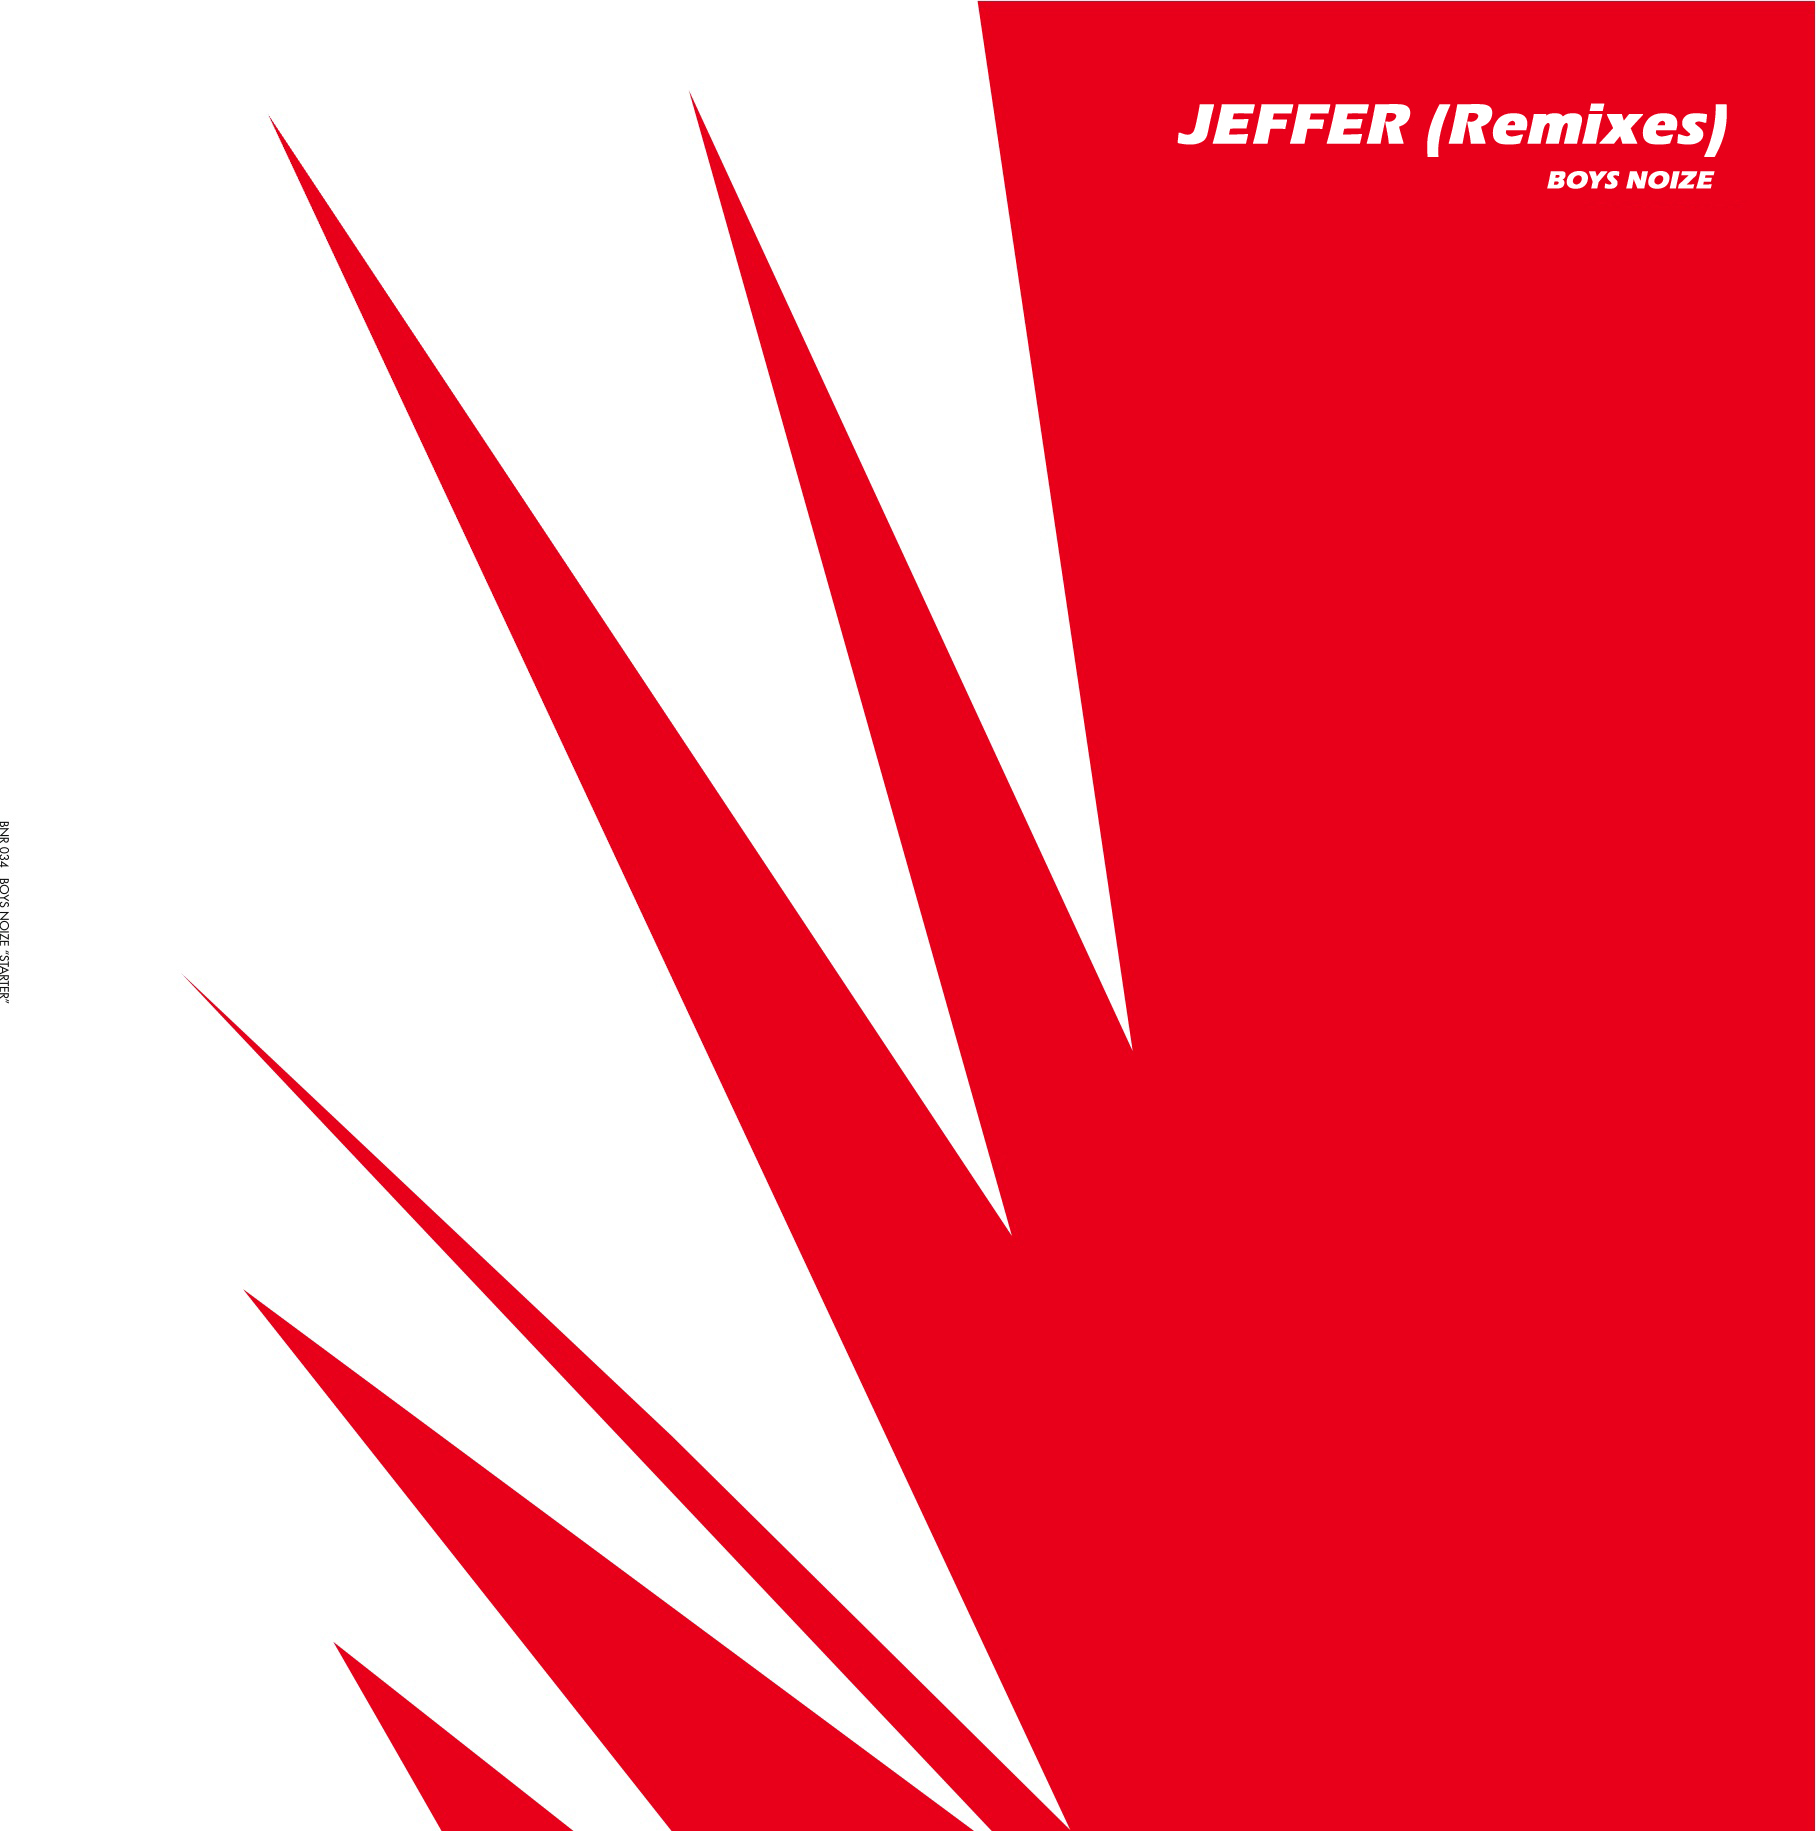 Boys Noize - Jeffer (Remixes)